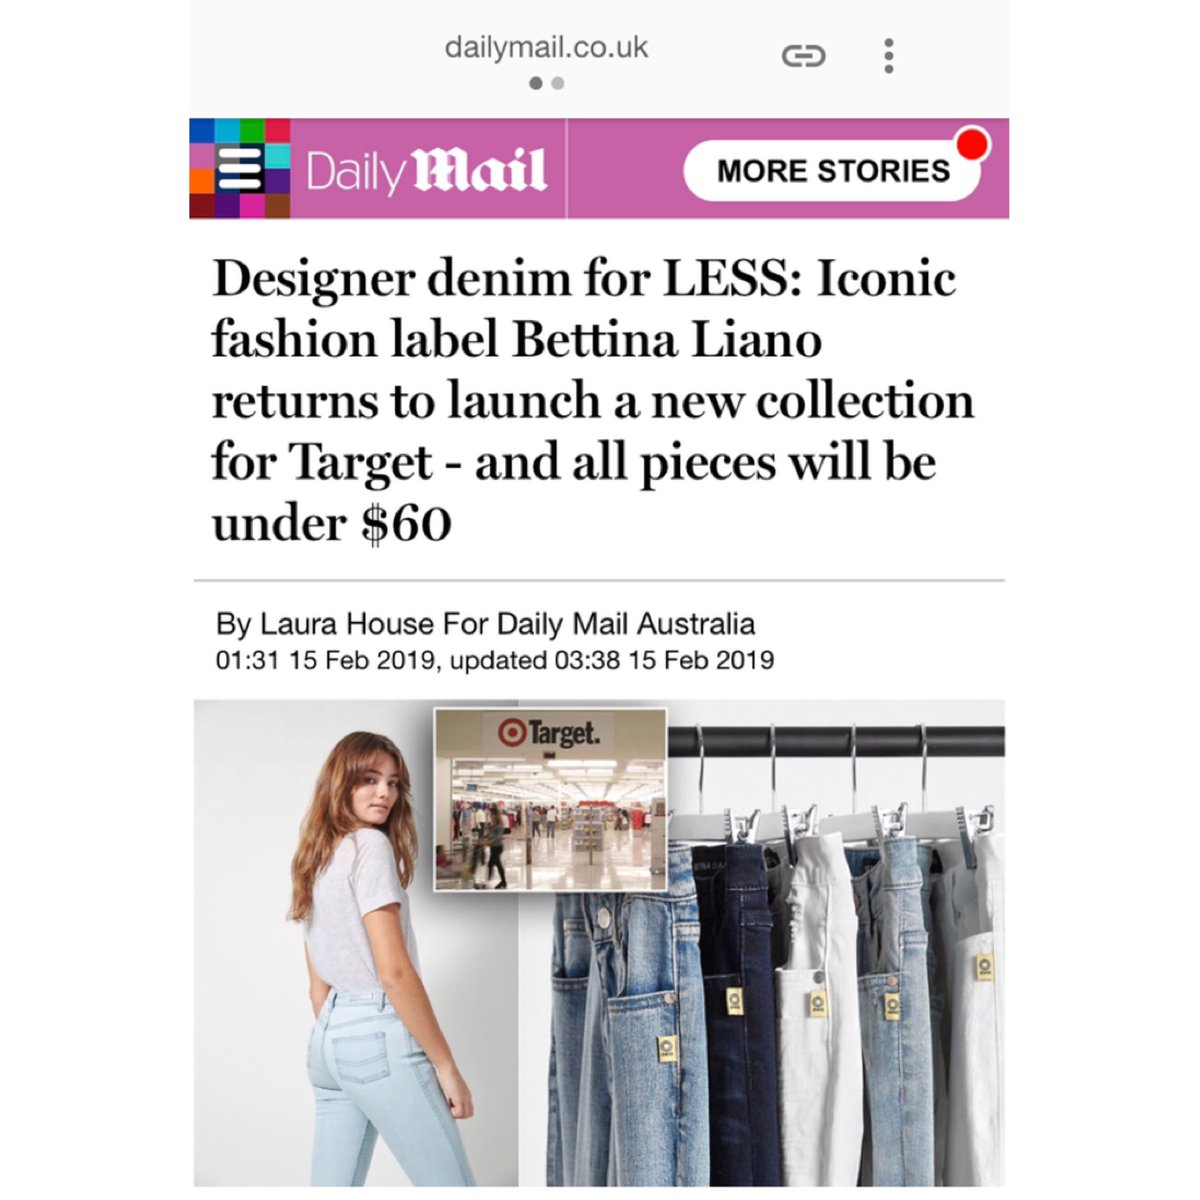 Bybl By Bettina Liano On Twitter Bybl Is The New Denim Label Founded By The Designer Bettina Liano I Want To Make It Clear For My Customers It S Not Part Of